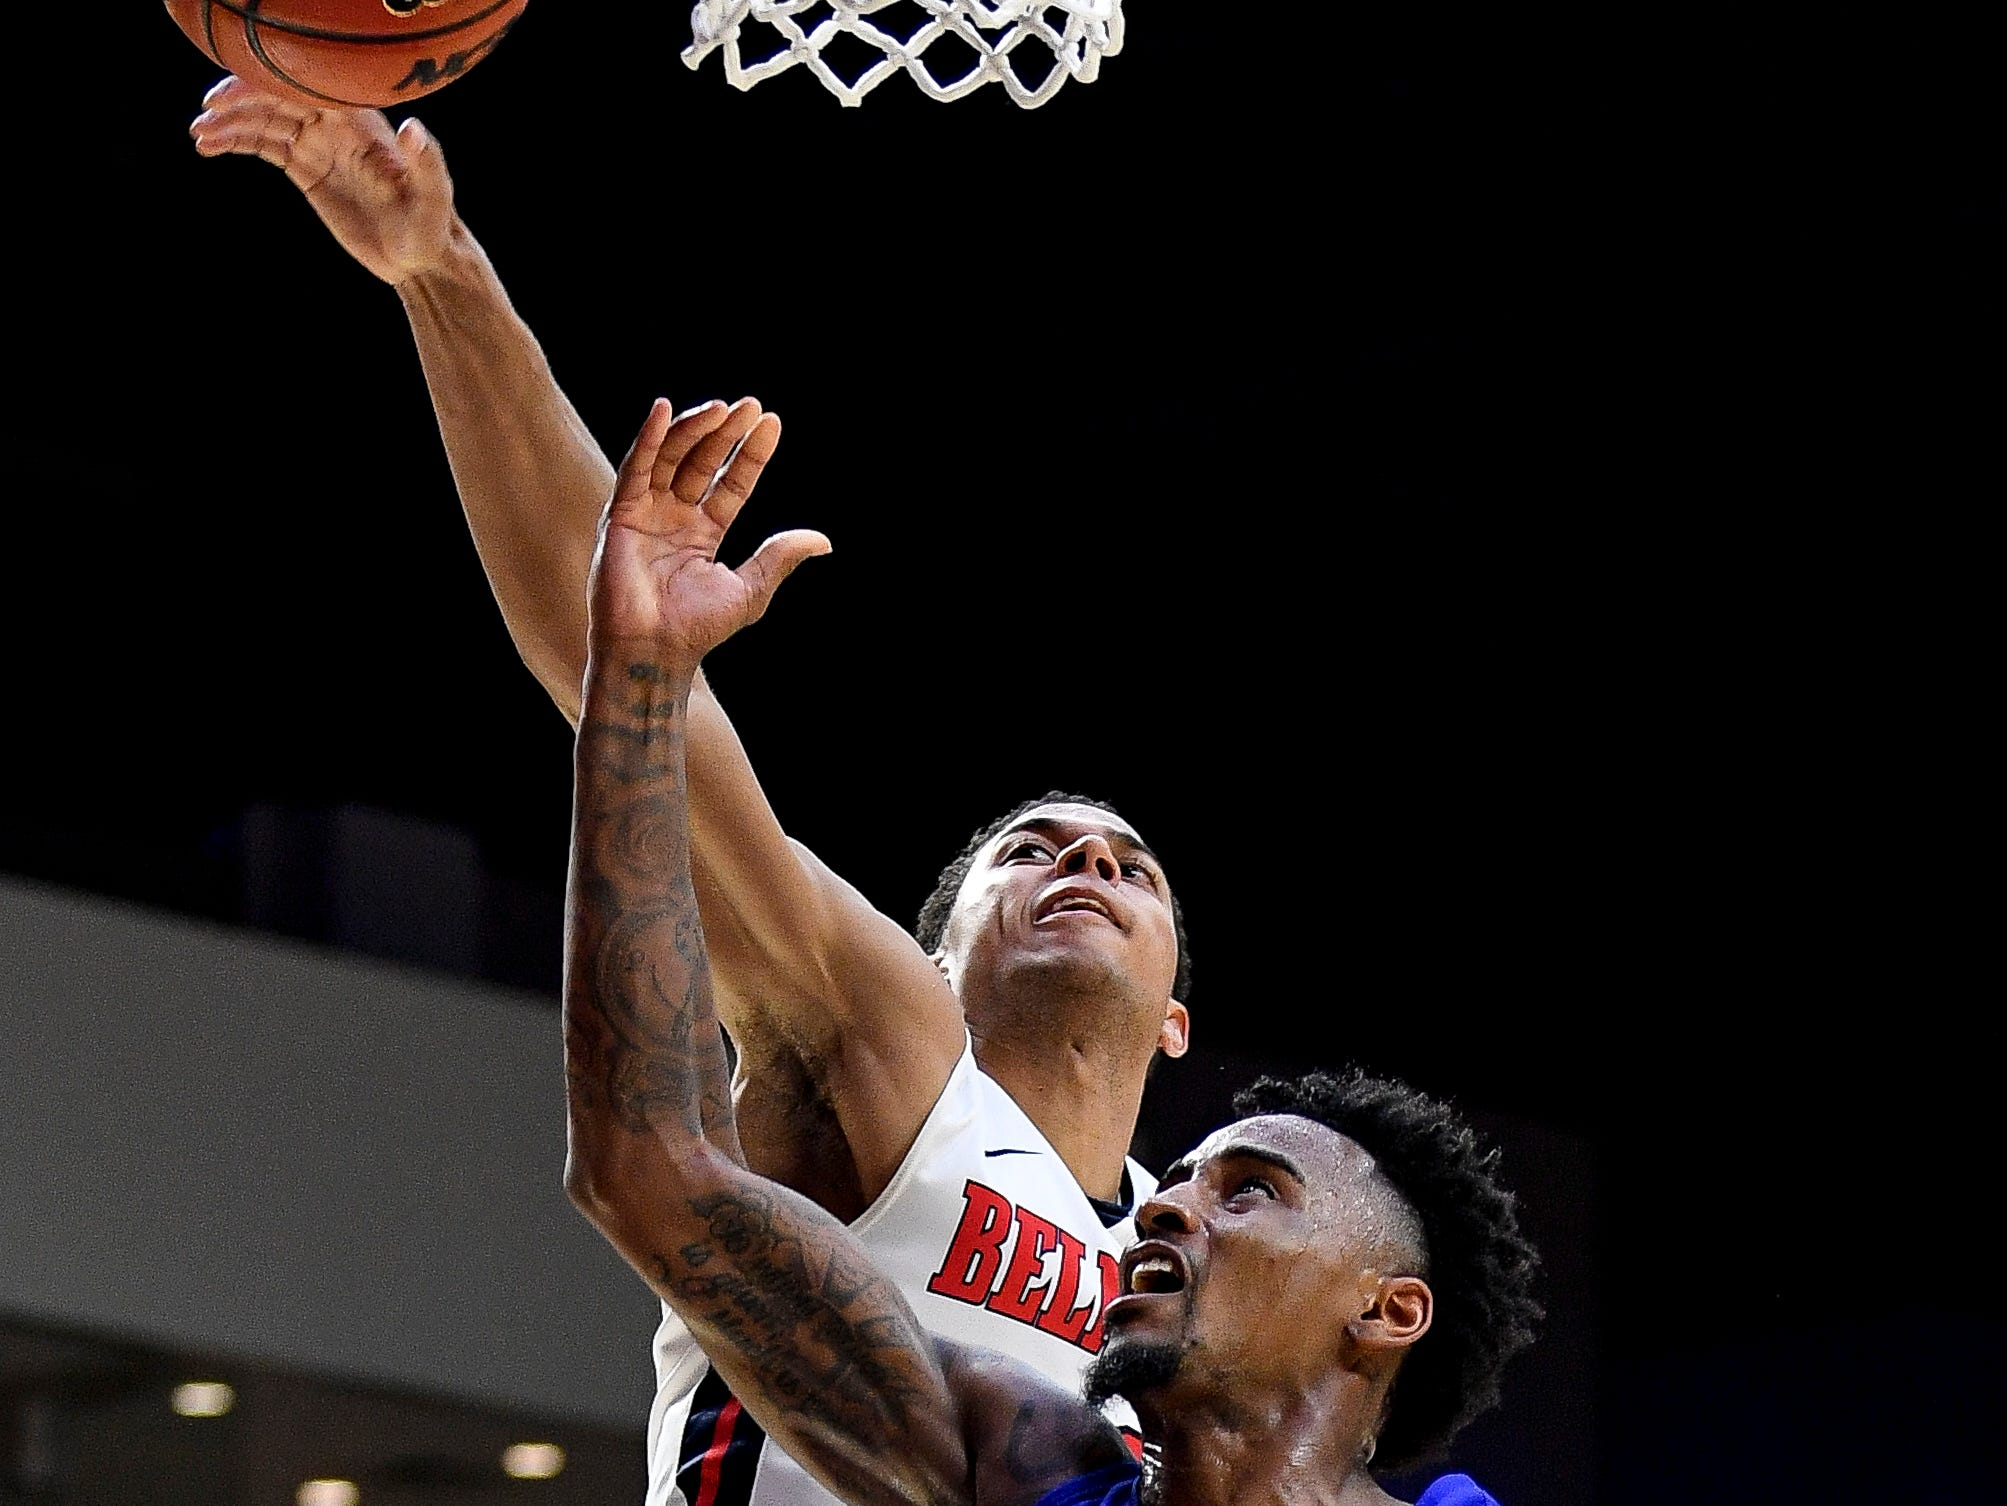 Belmont guard Kevin McClain (11) blocks a shot from MTSU guard Antonio Green (55) during the second half at the Curb Event Center Arena in Nashville, Tenn., Monday, Nov. 12, 2018.